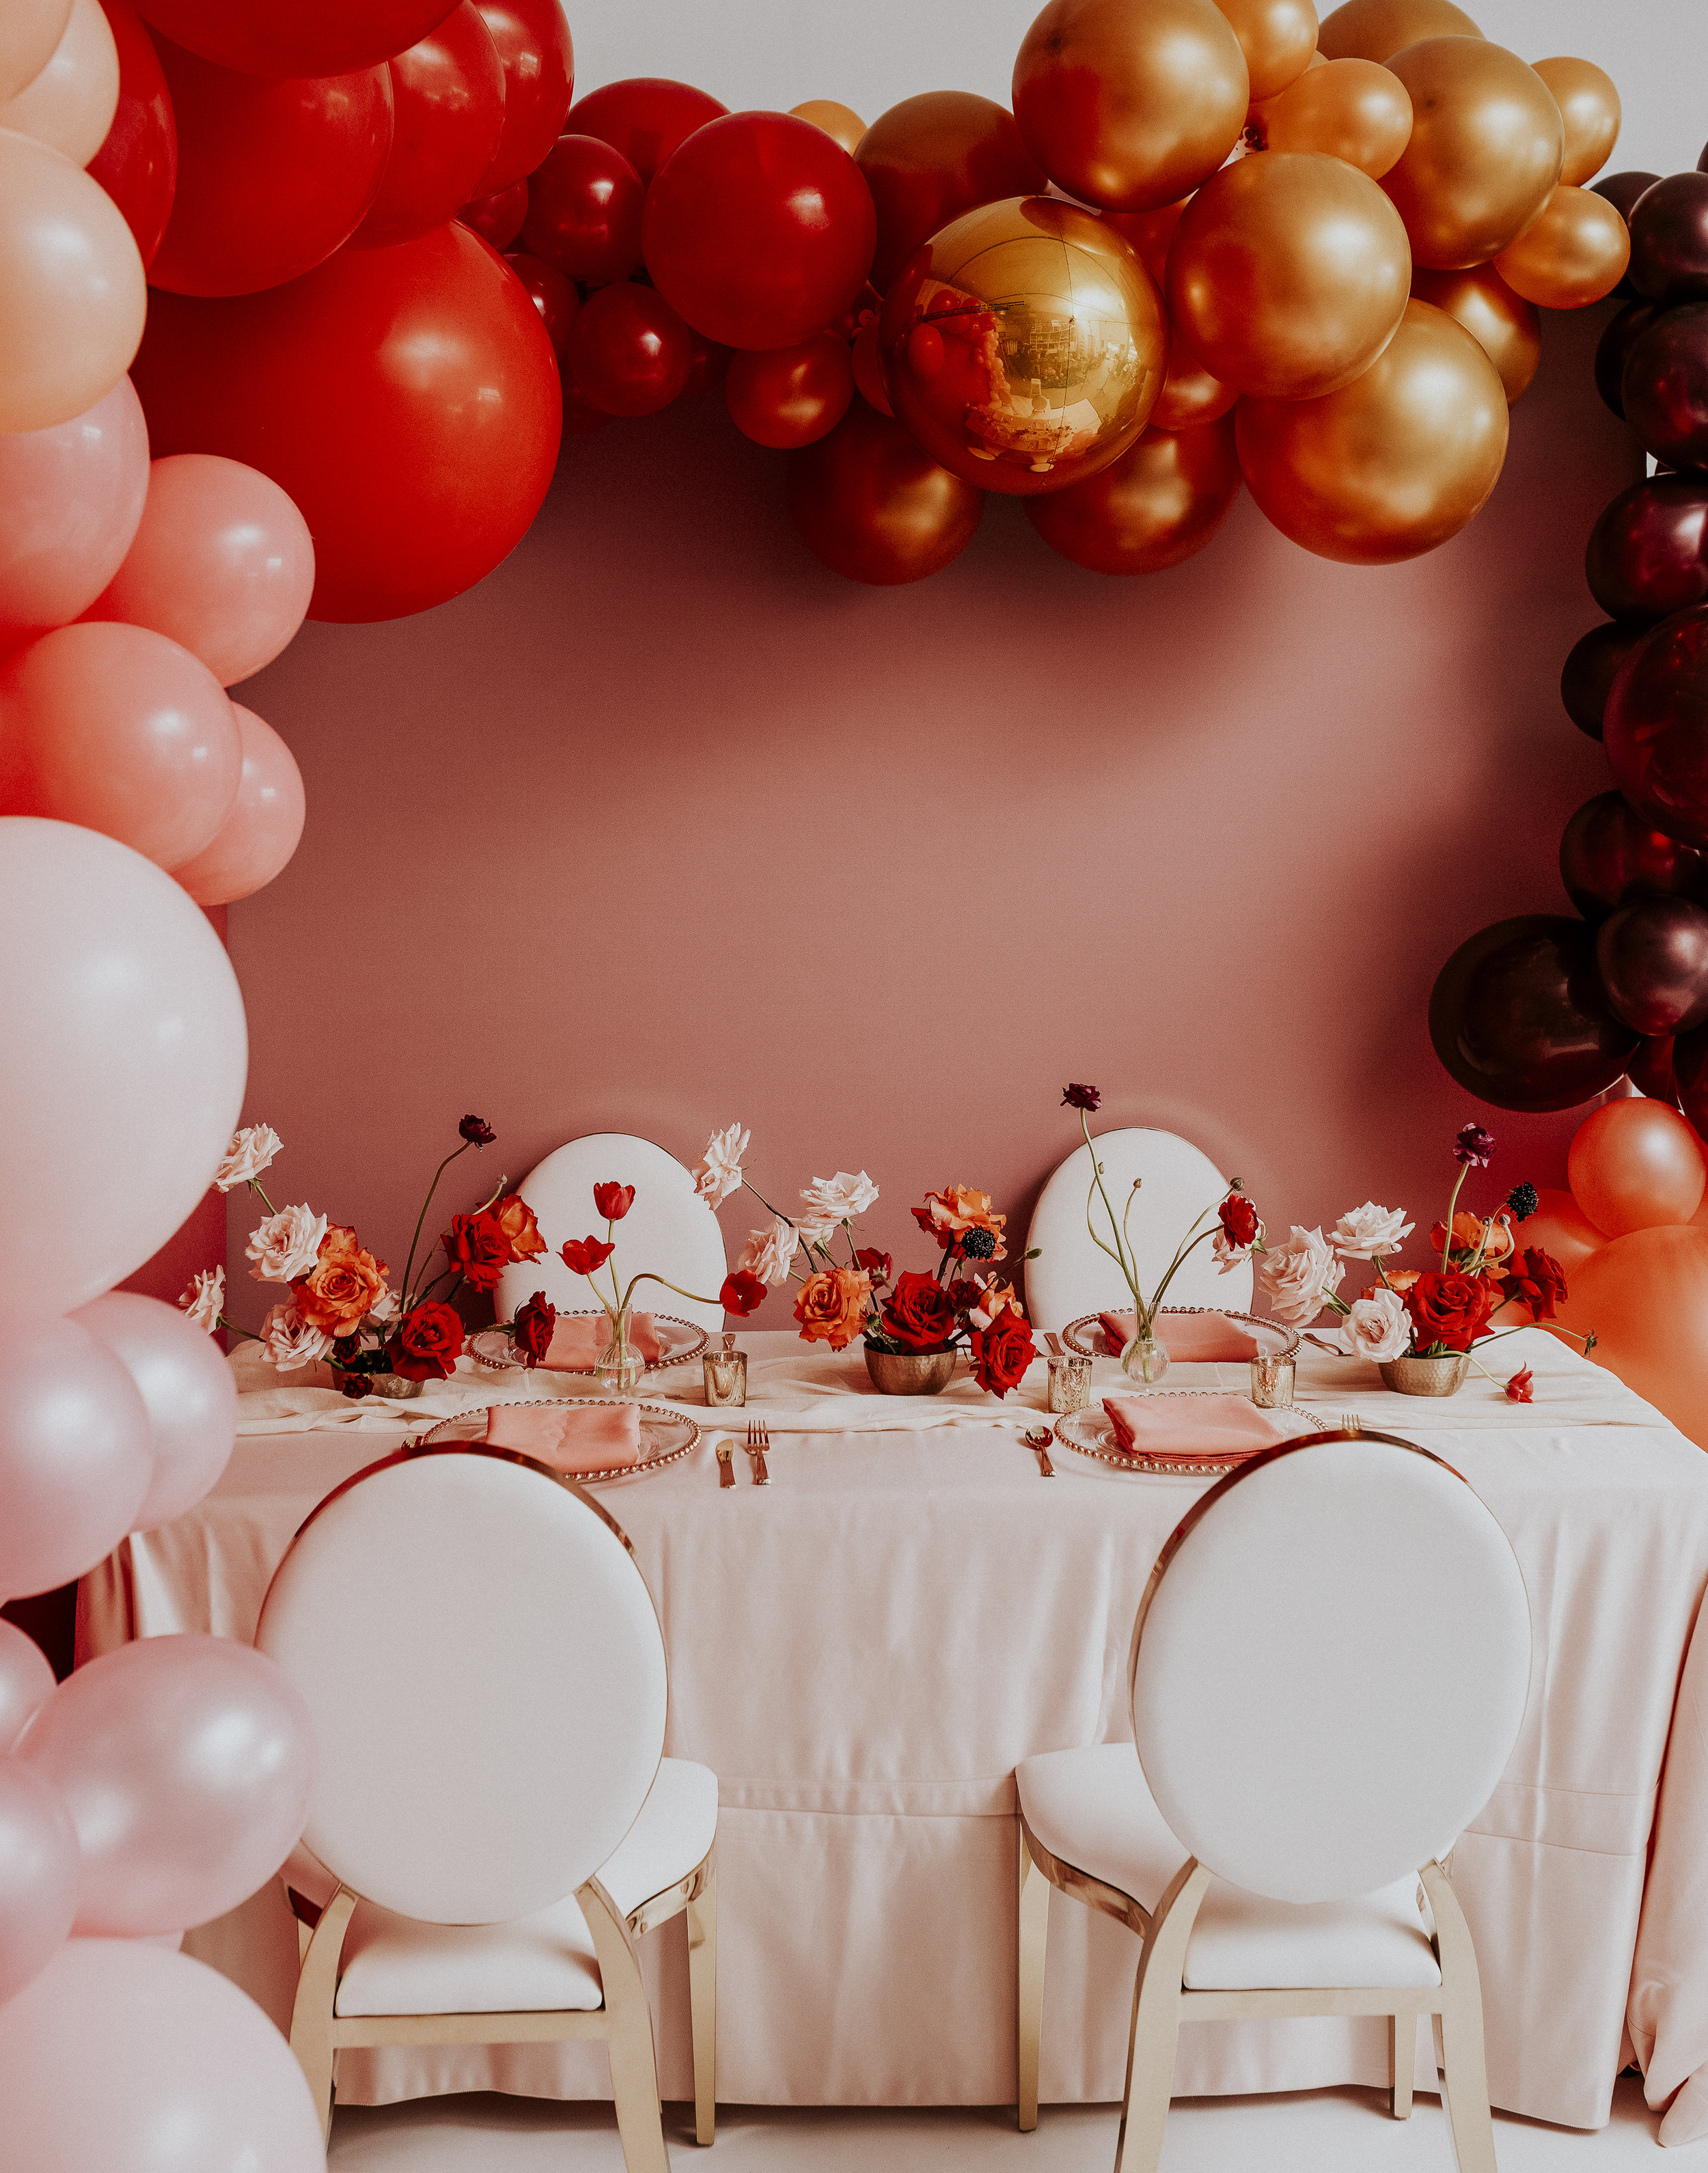 Table with Balloon Frame